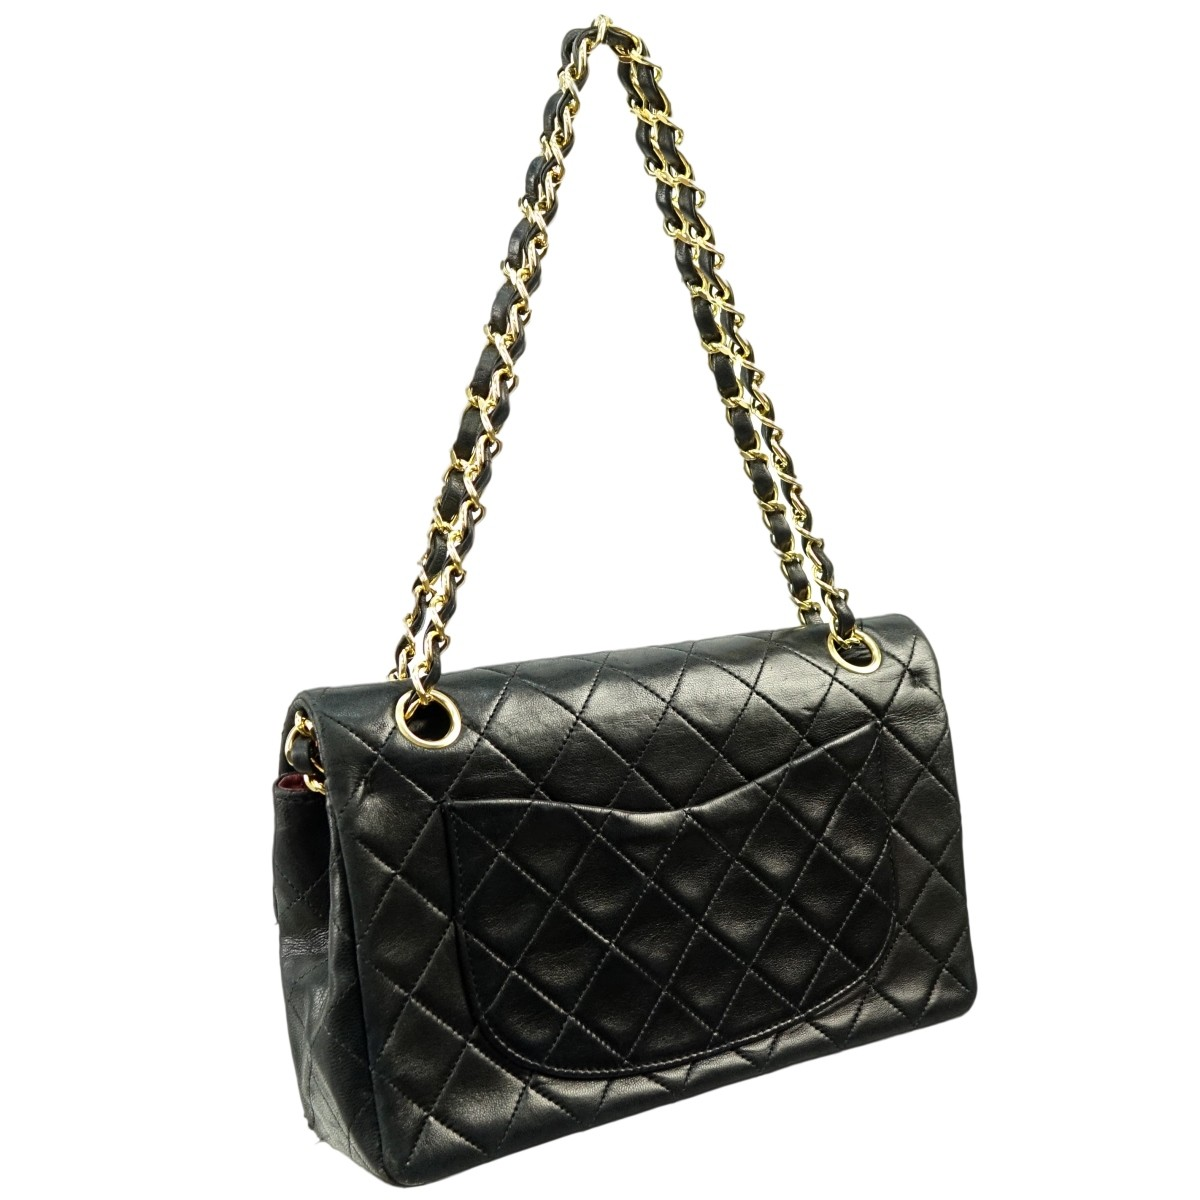 Chanel Black Quilted Leather Double Flap Bag 23